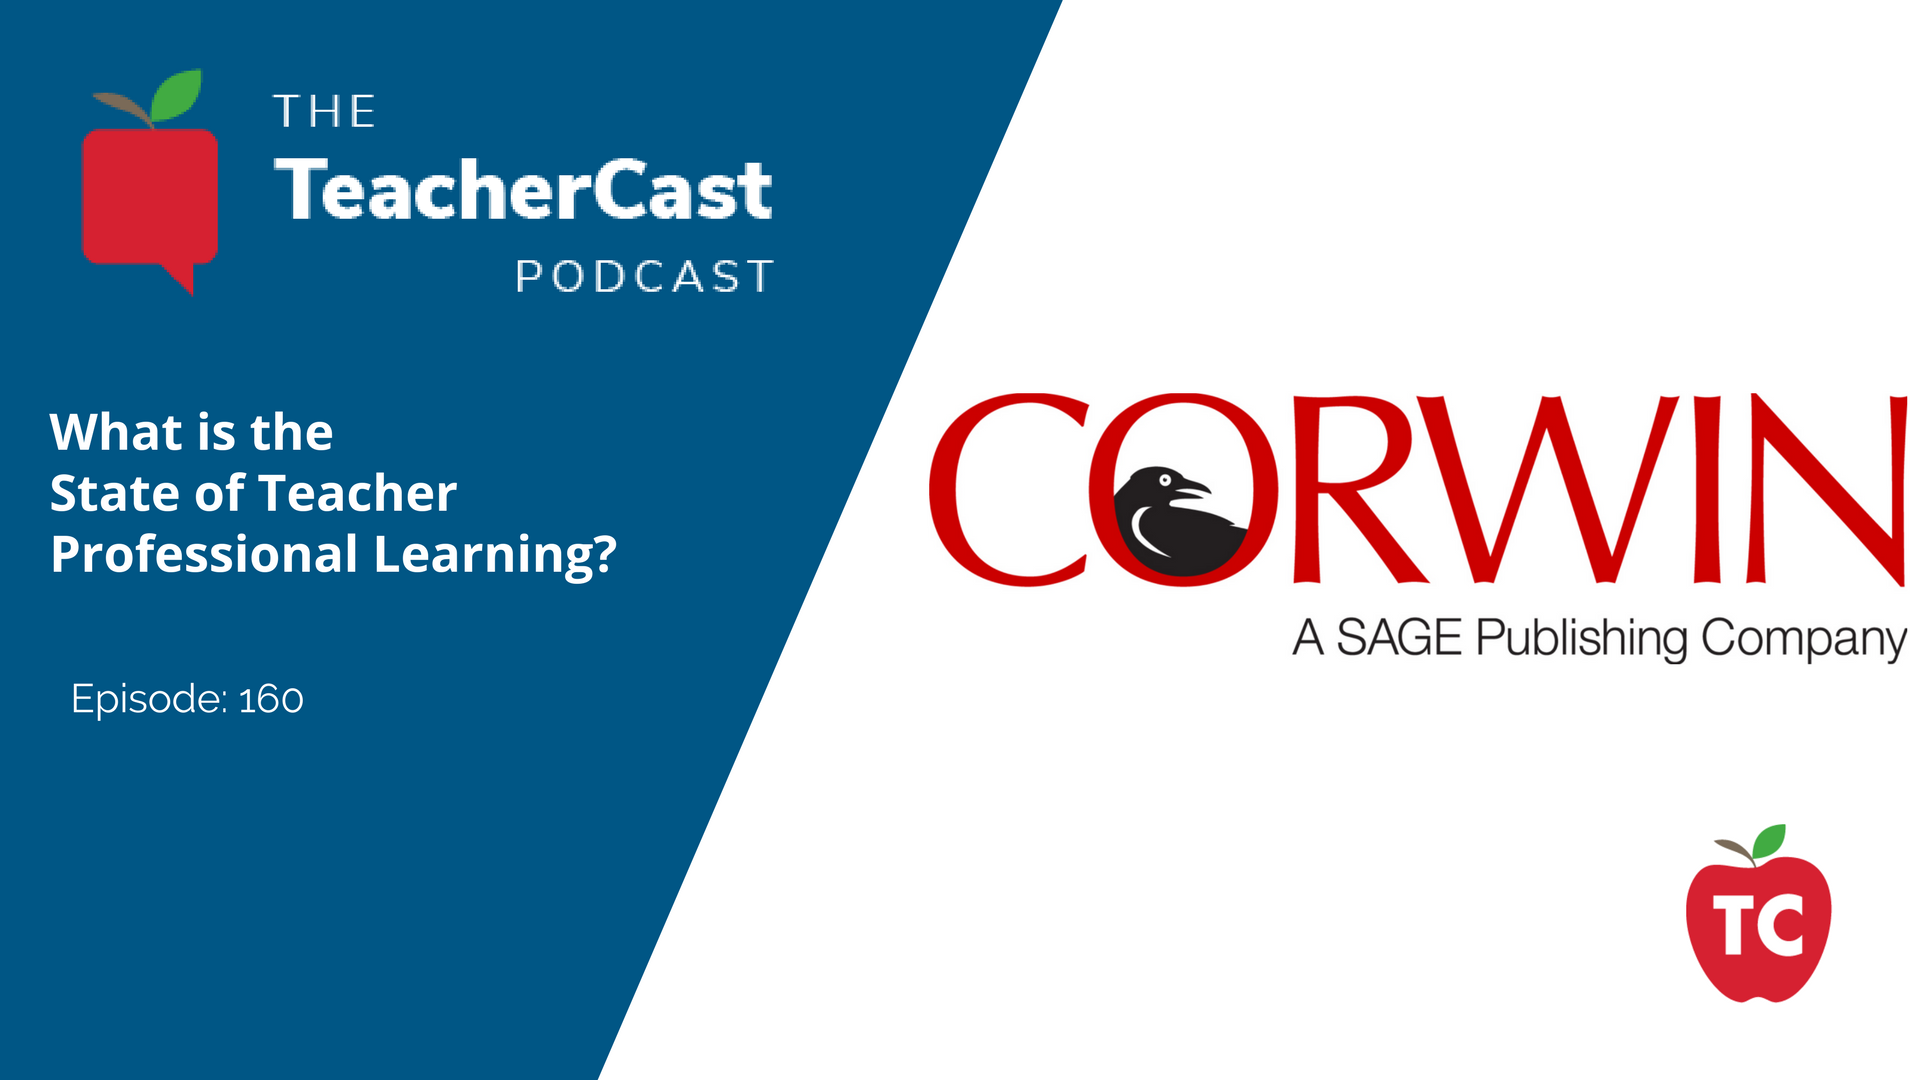 The State of Teacher Professional Learning